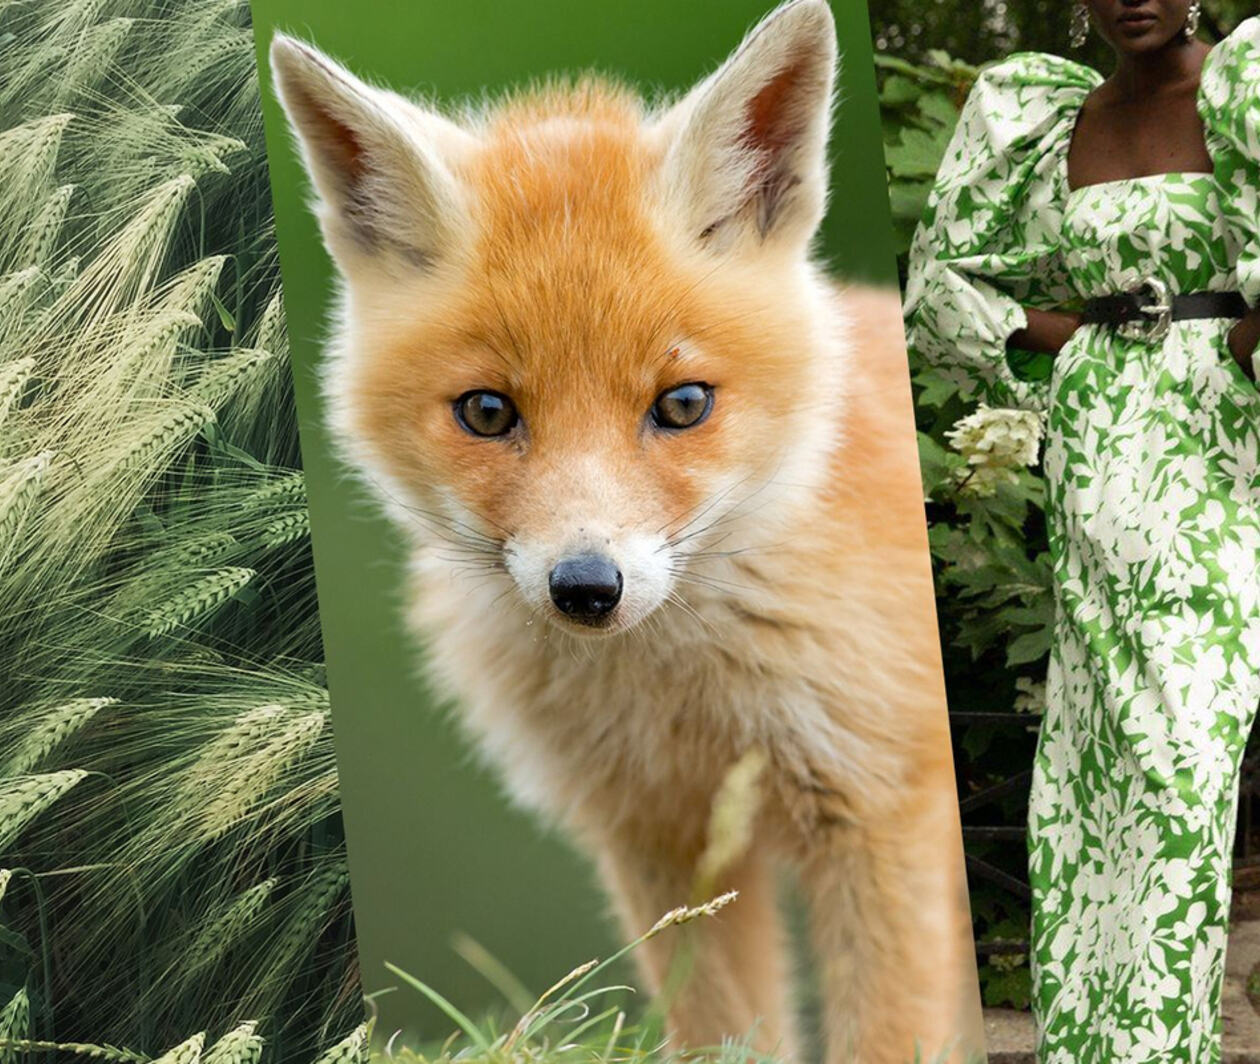 Compassion in Fashion: Sustainability and the Global Fur Trade 同理新时尚:可持续发展与全球皮草贸易